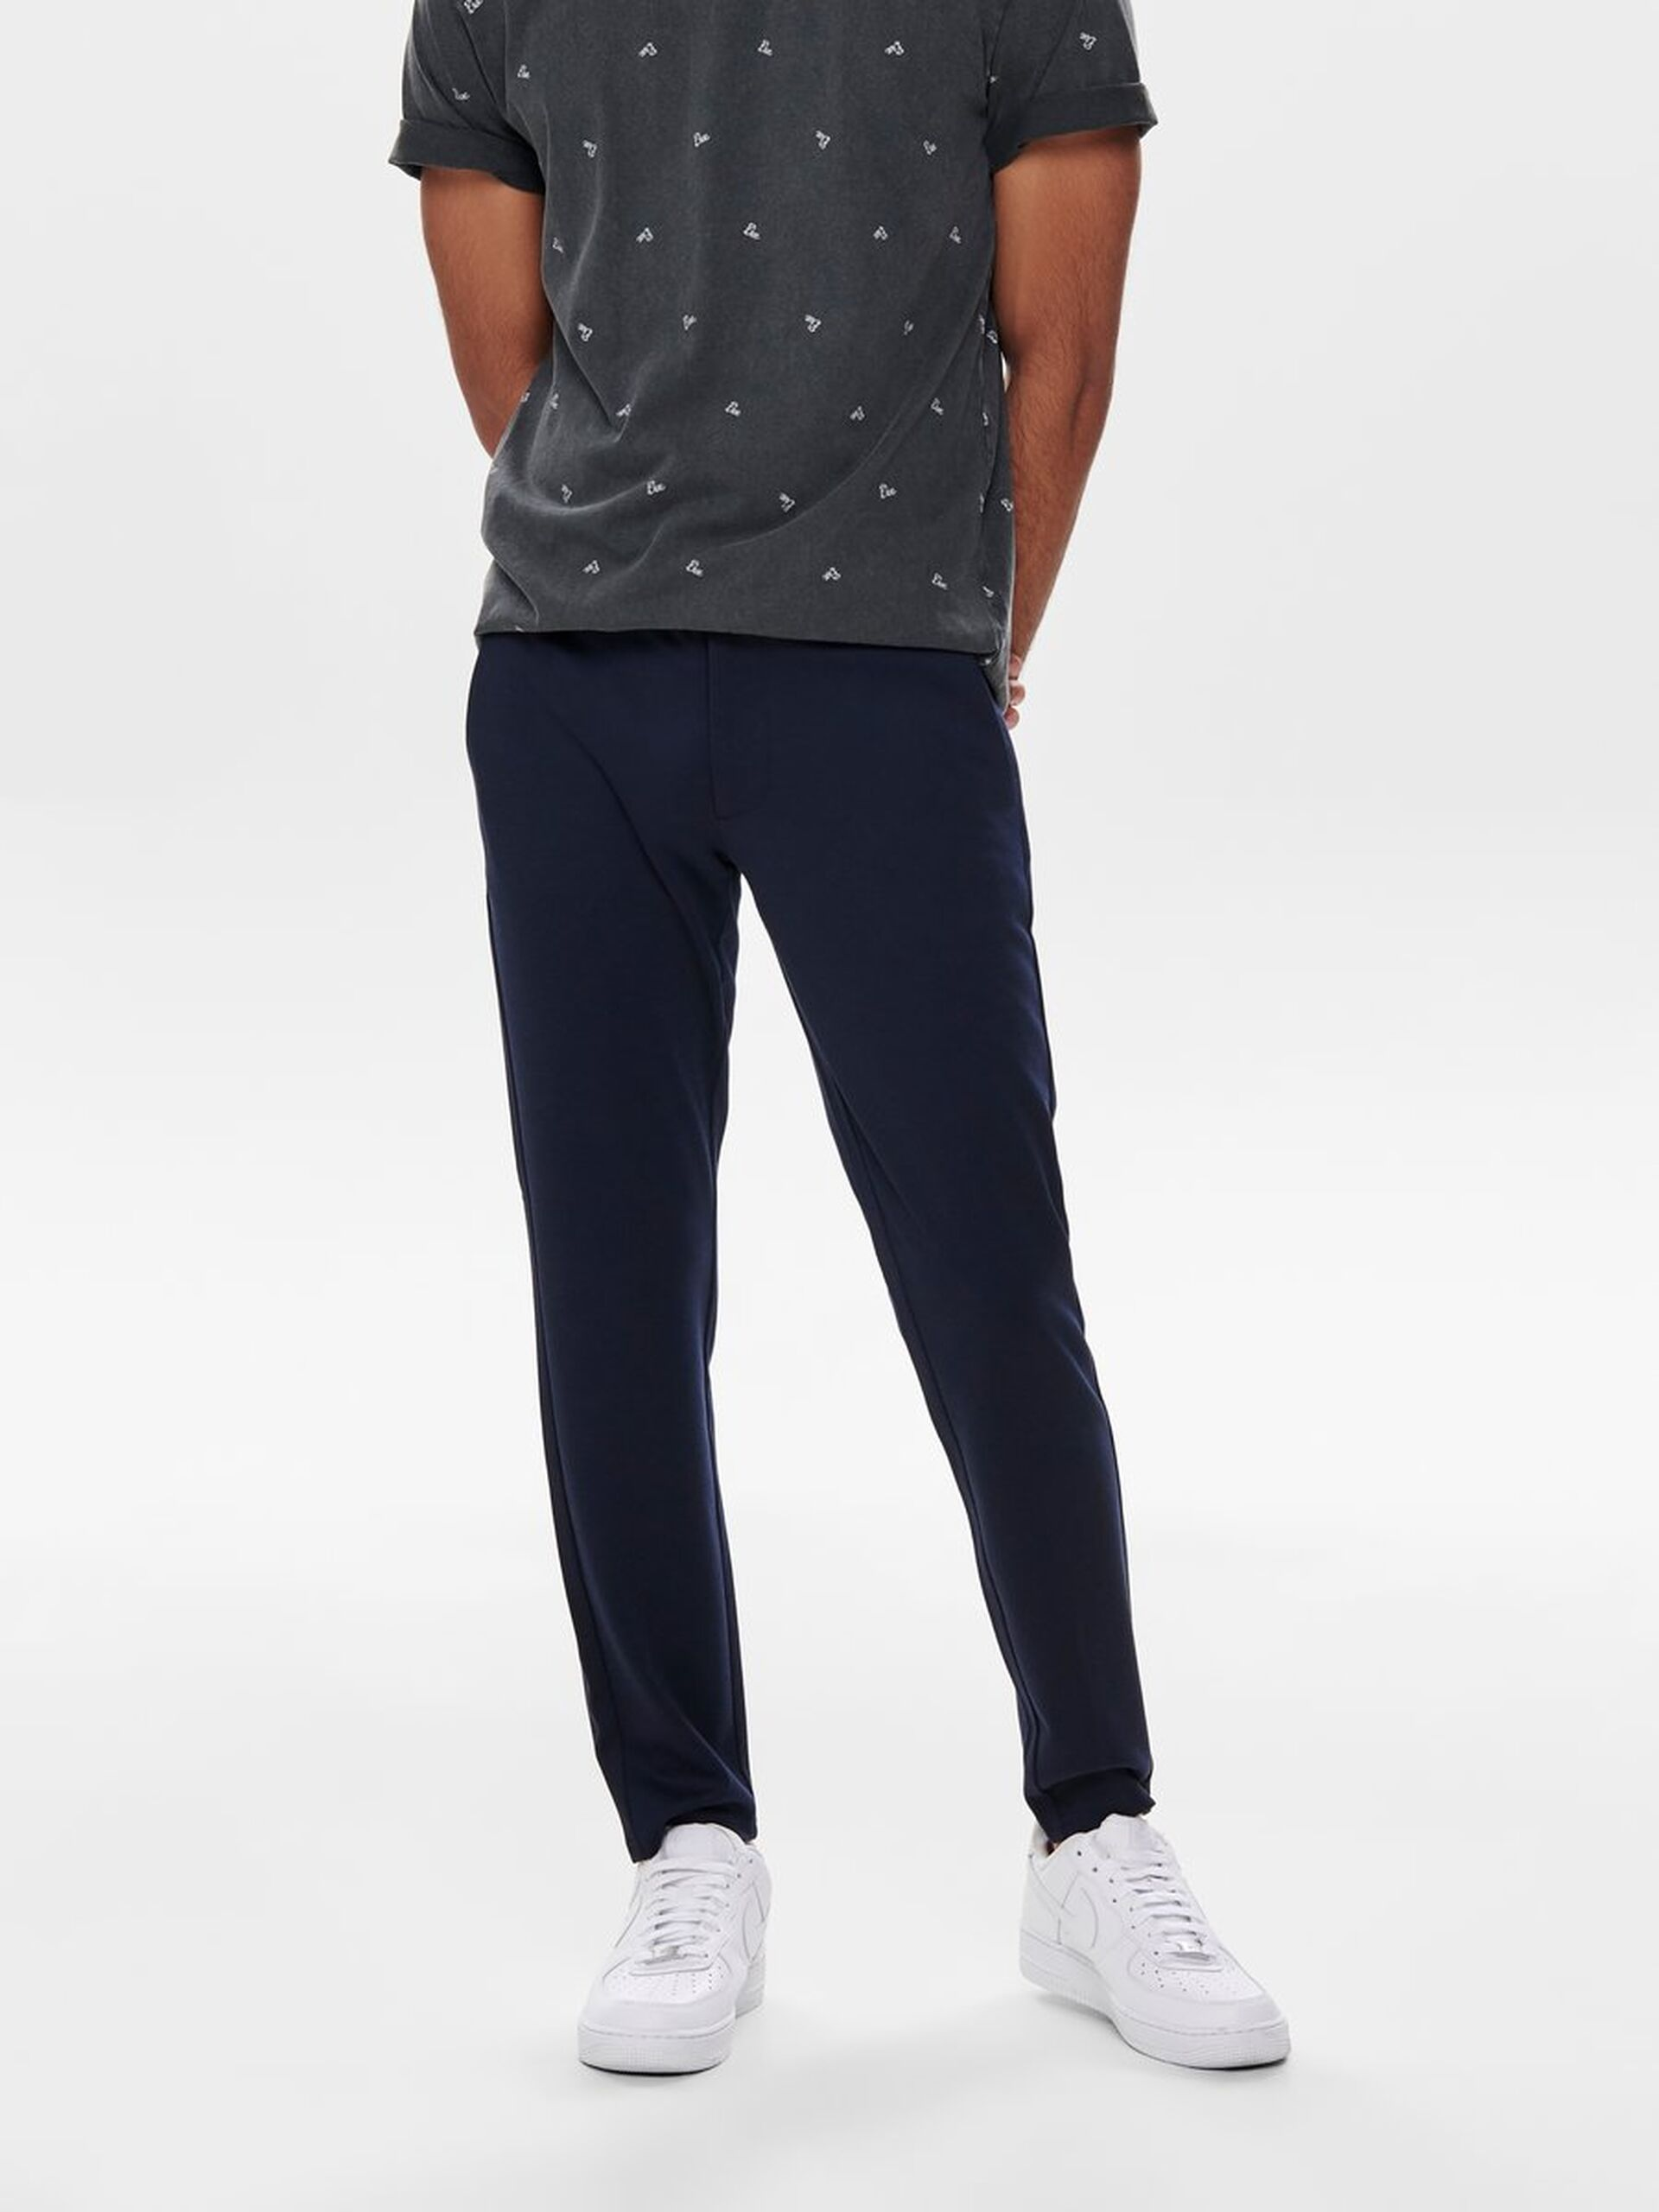 Performance Pants, Only & Sons, Mark chinos, night sky, 33/30